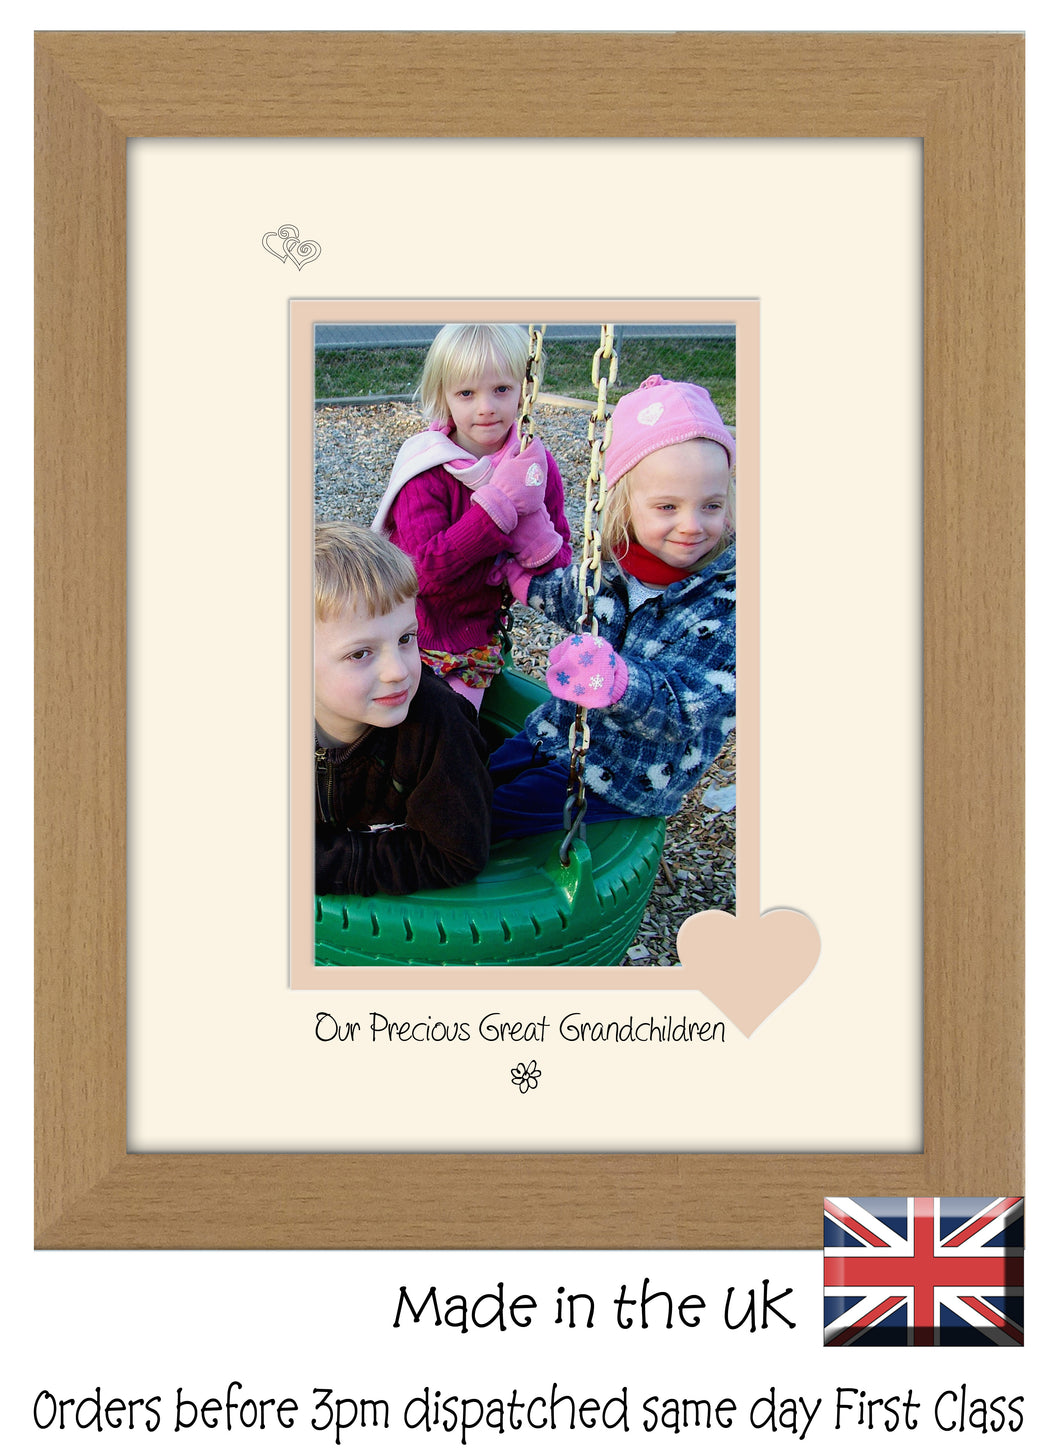 Great Grandchildren Photo Frame - Our precious Great Grandchildren Portrait photo frame 6